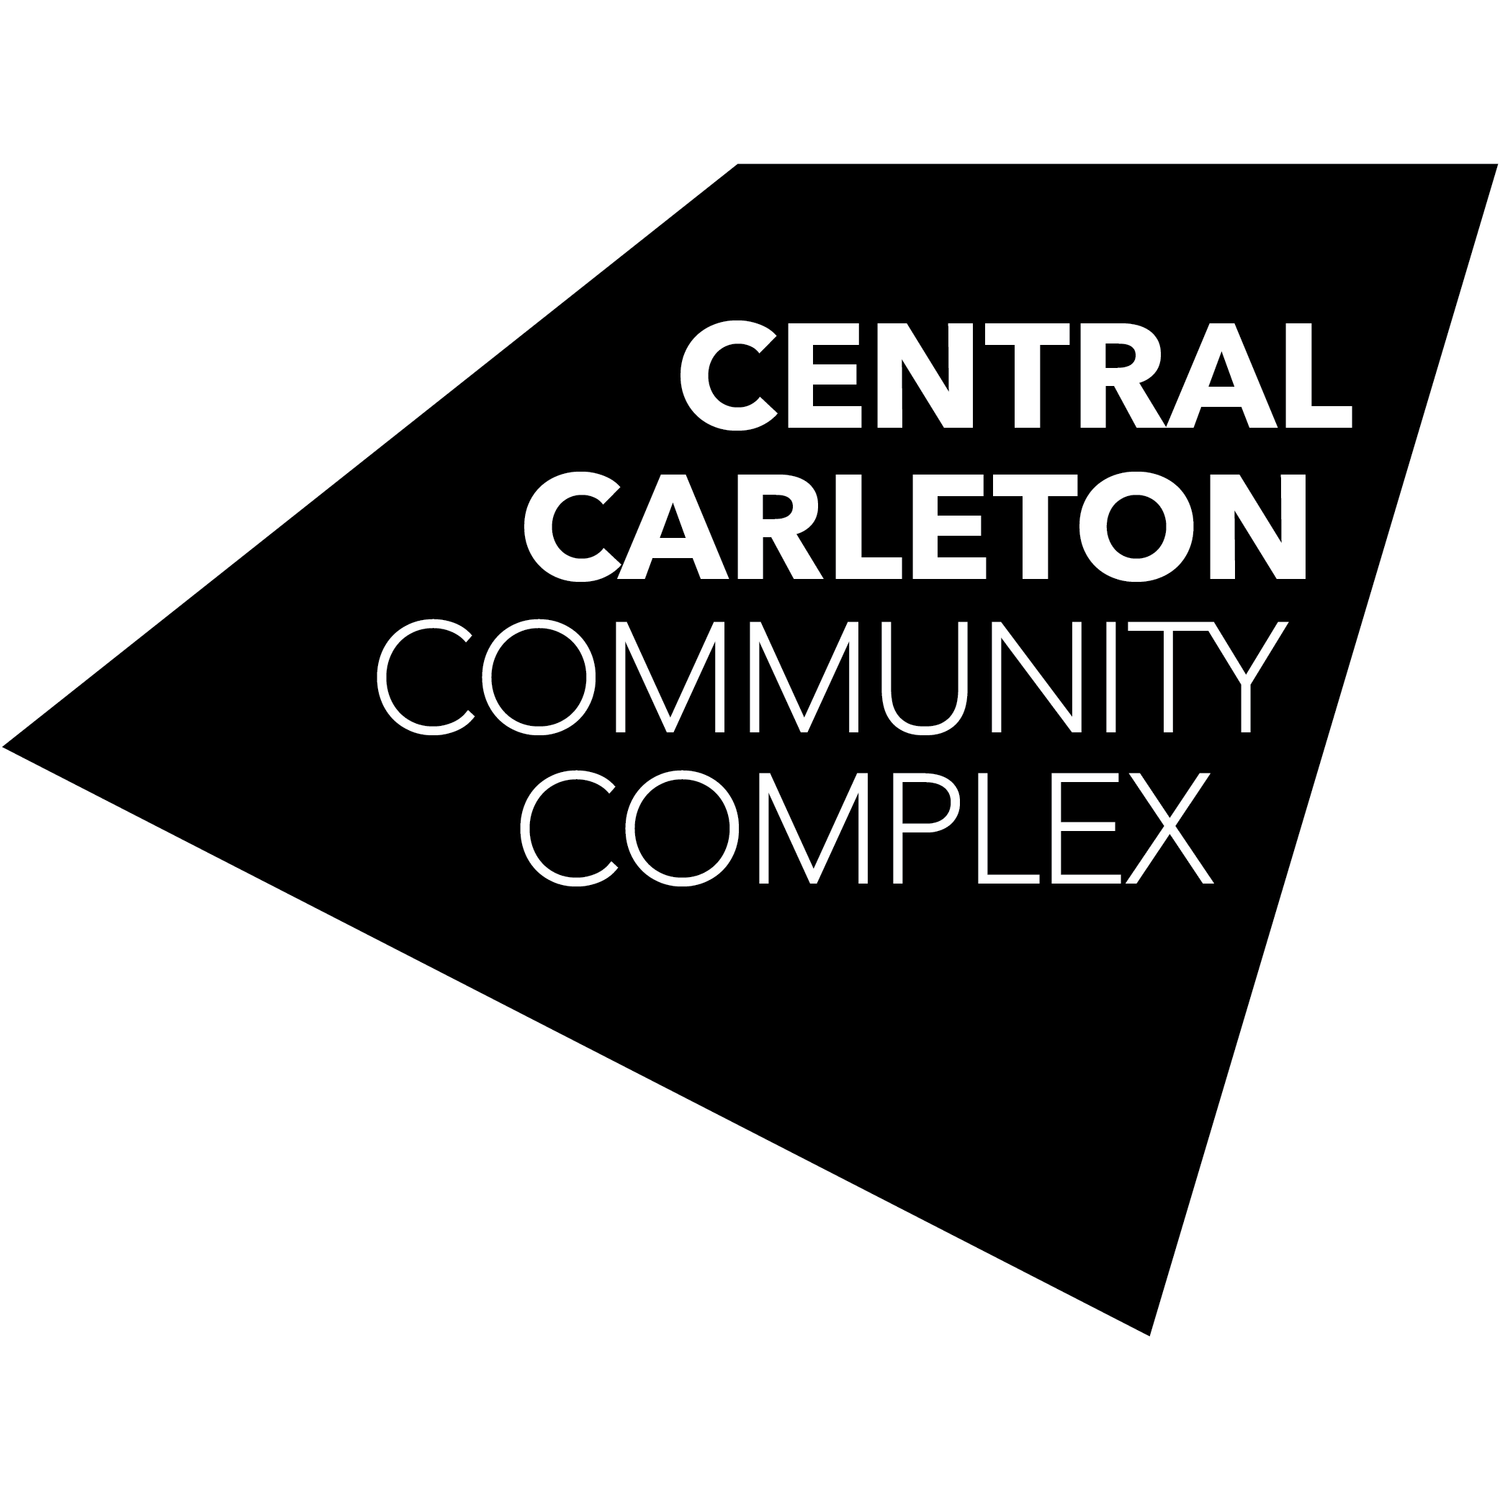 Central Carleton Community Complex